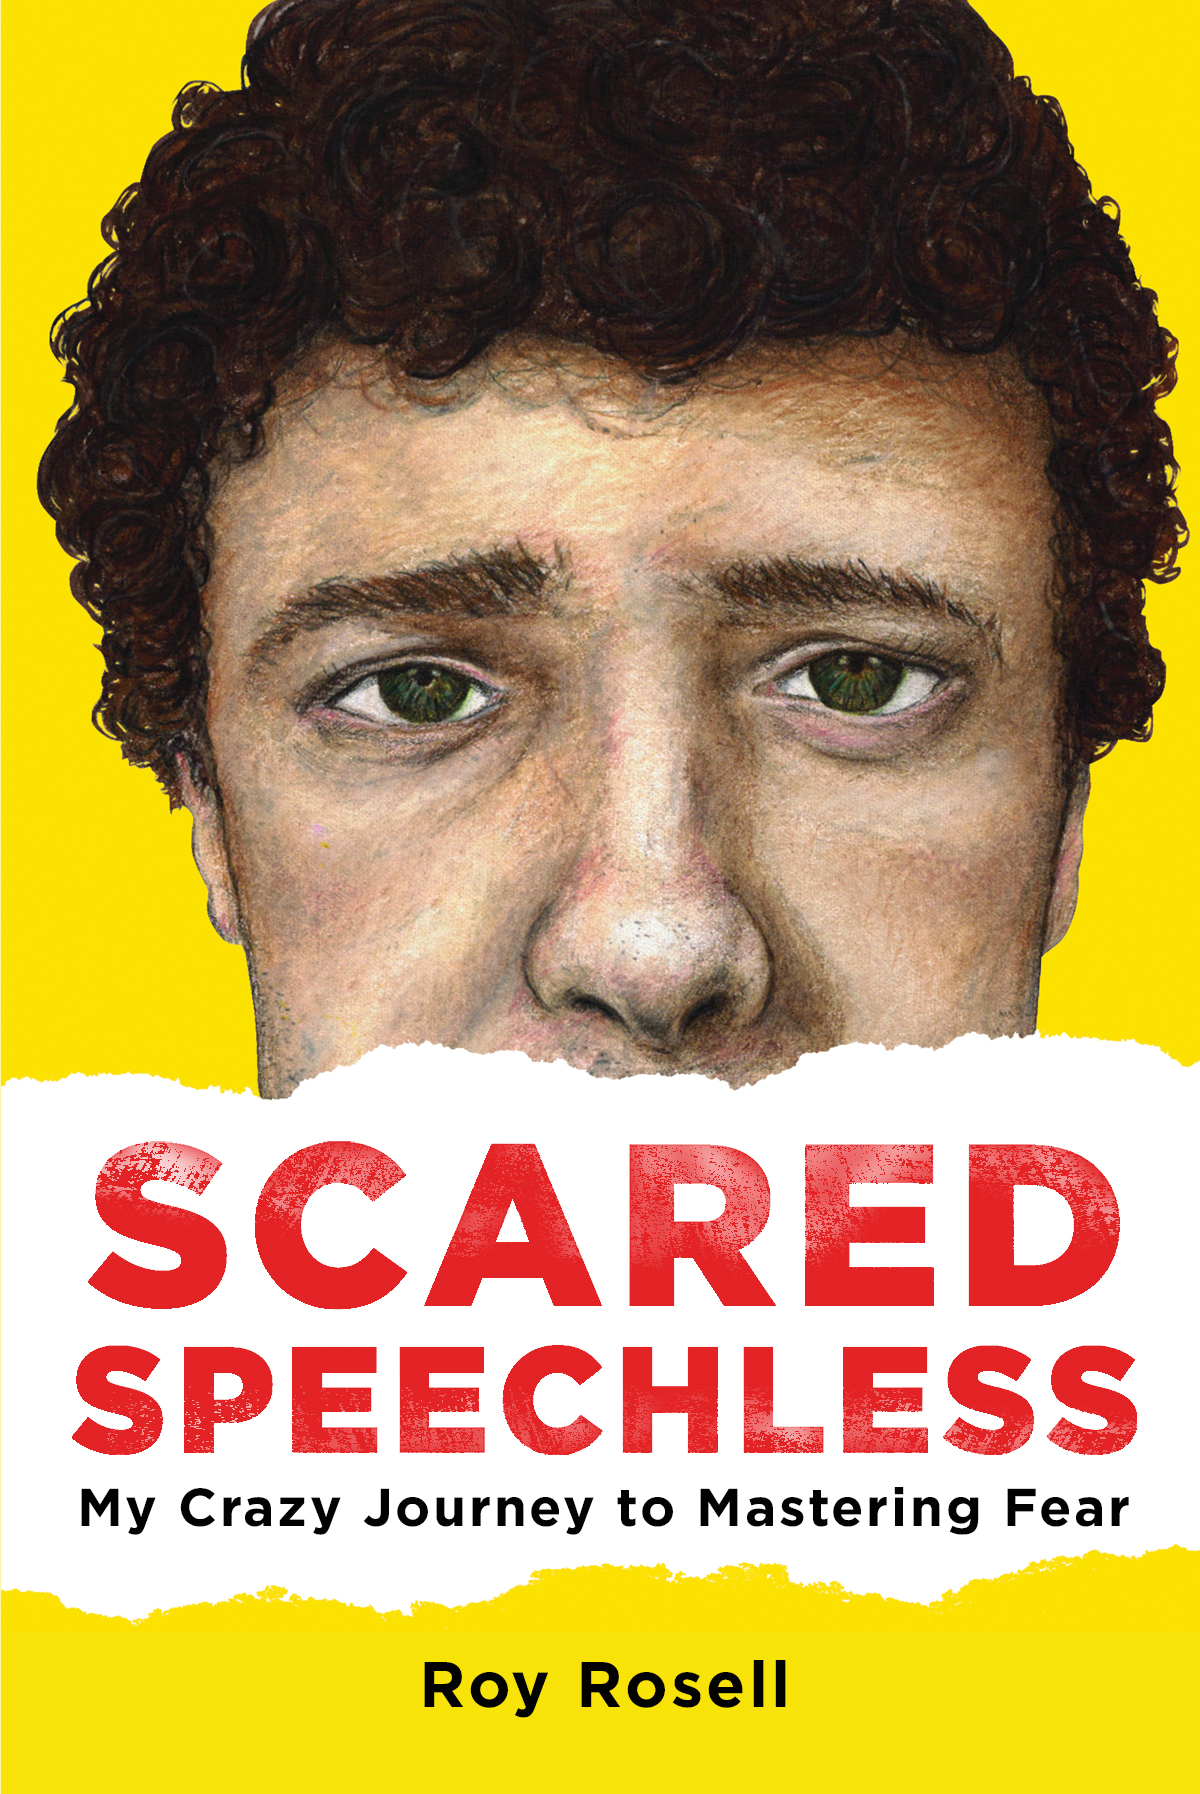 Scared Speechless  is now available on Amazon!